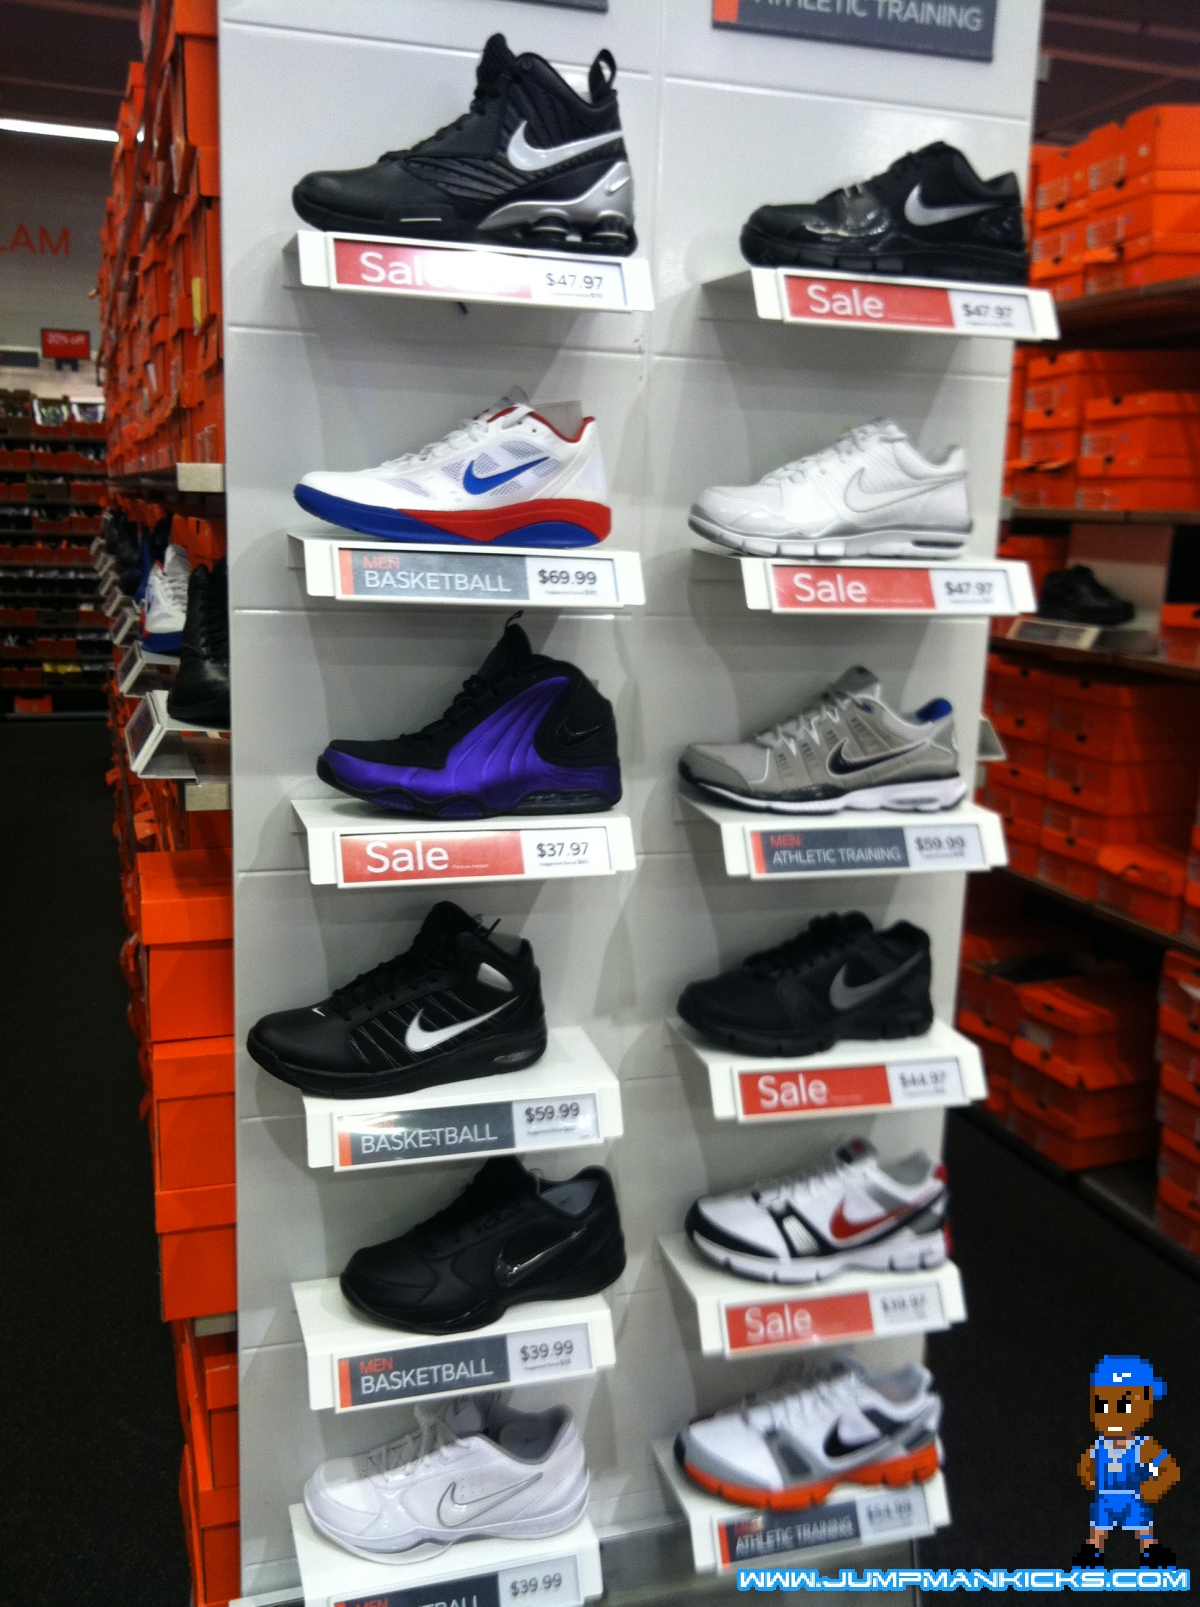 outlet Archives - Air 23 - Air Jordan Release Dates, Foamposite, Air Max,  and More